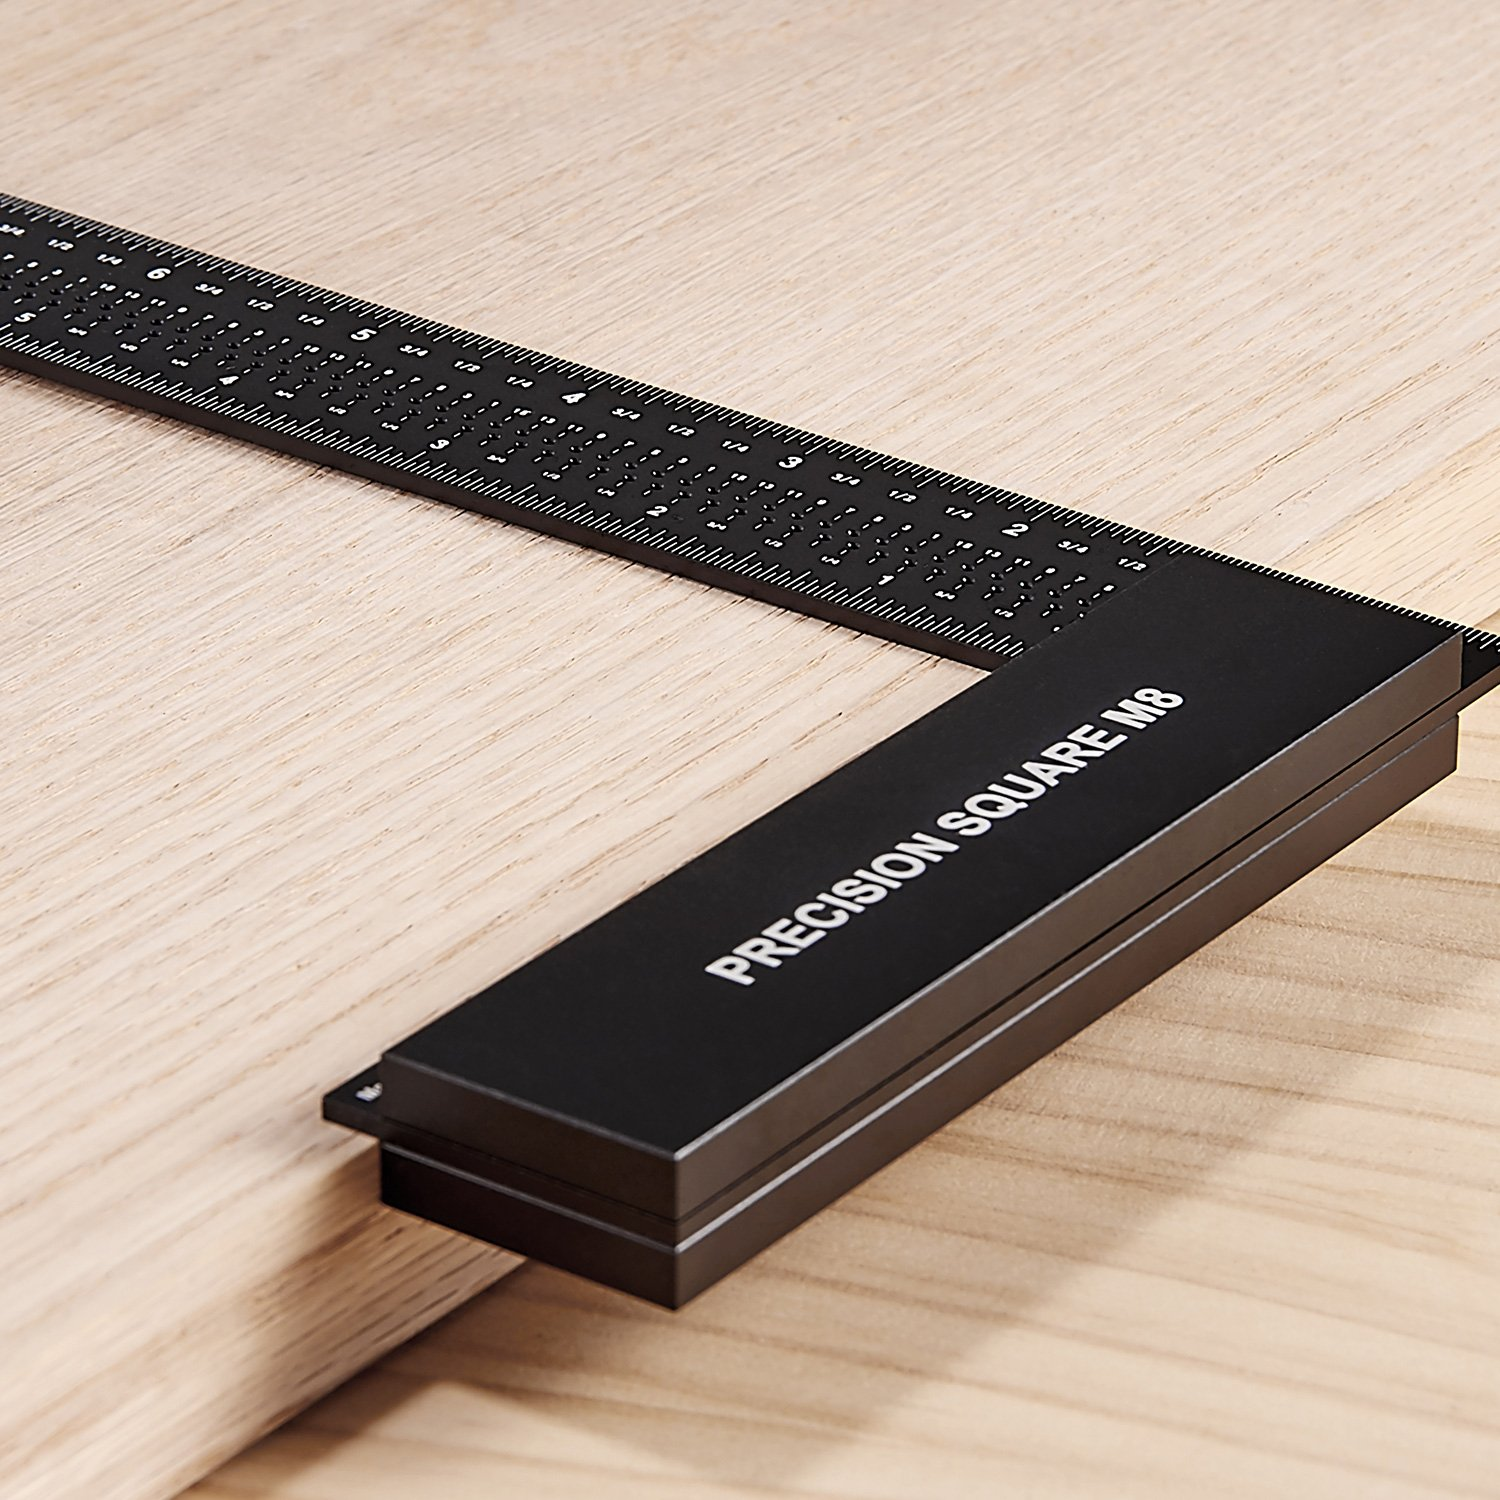 Woodraphic Precision Square 12-inch Guaranteed Square Ruler for Measuring and Marking - Aluminum Steel Framing Tool for Professional Carpentry Use by Woodraphic (Image #7)